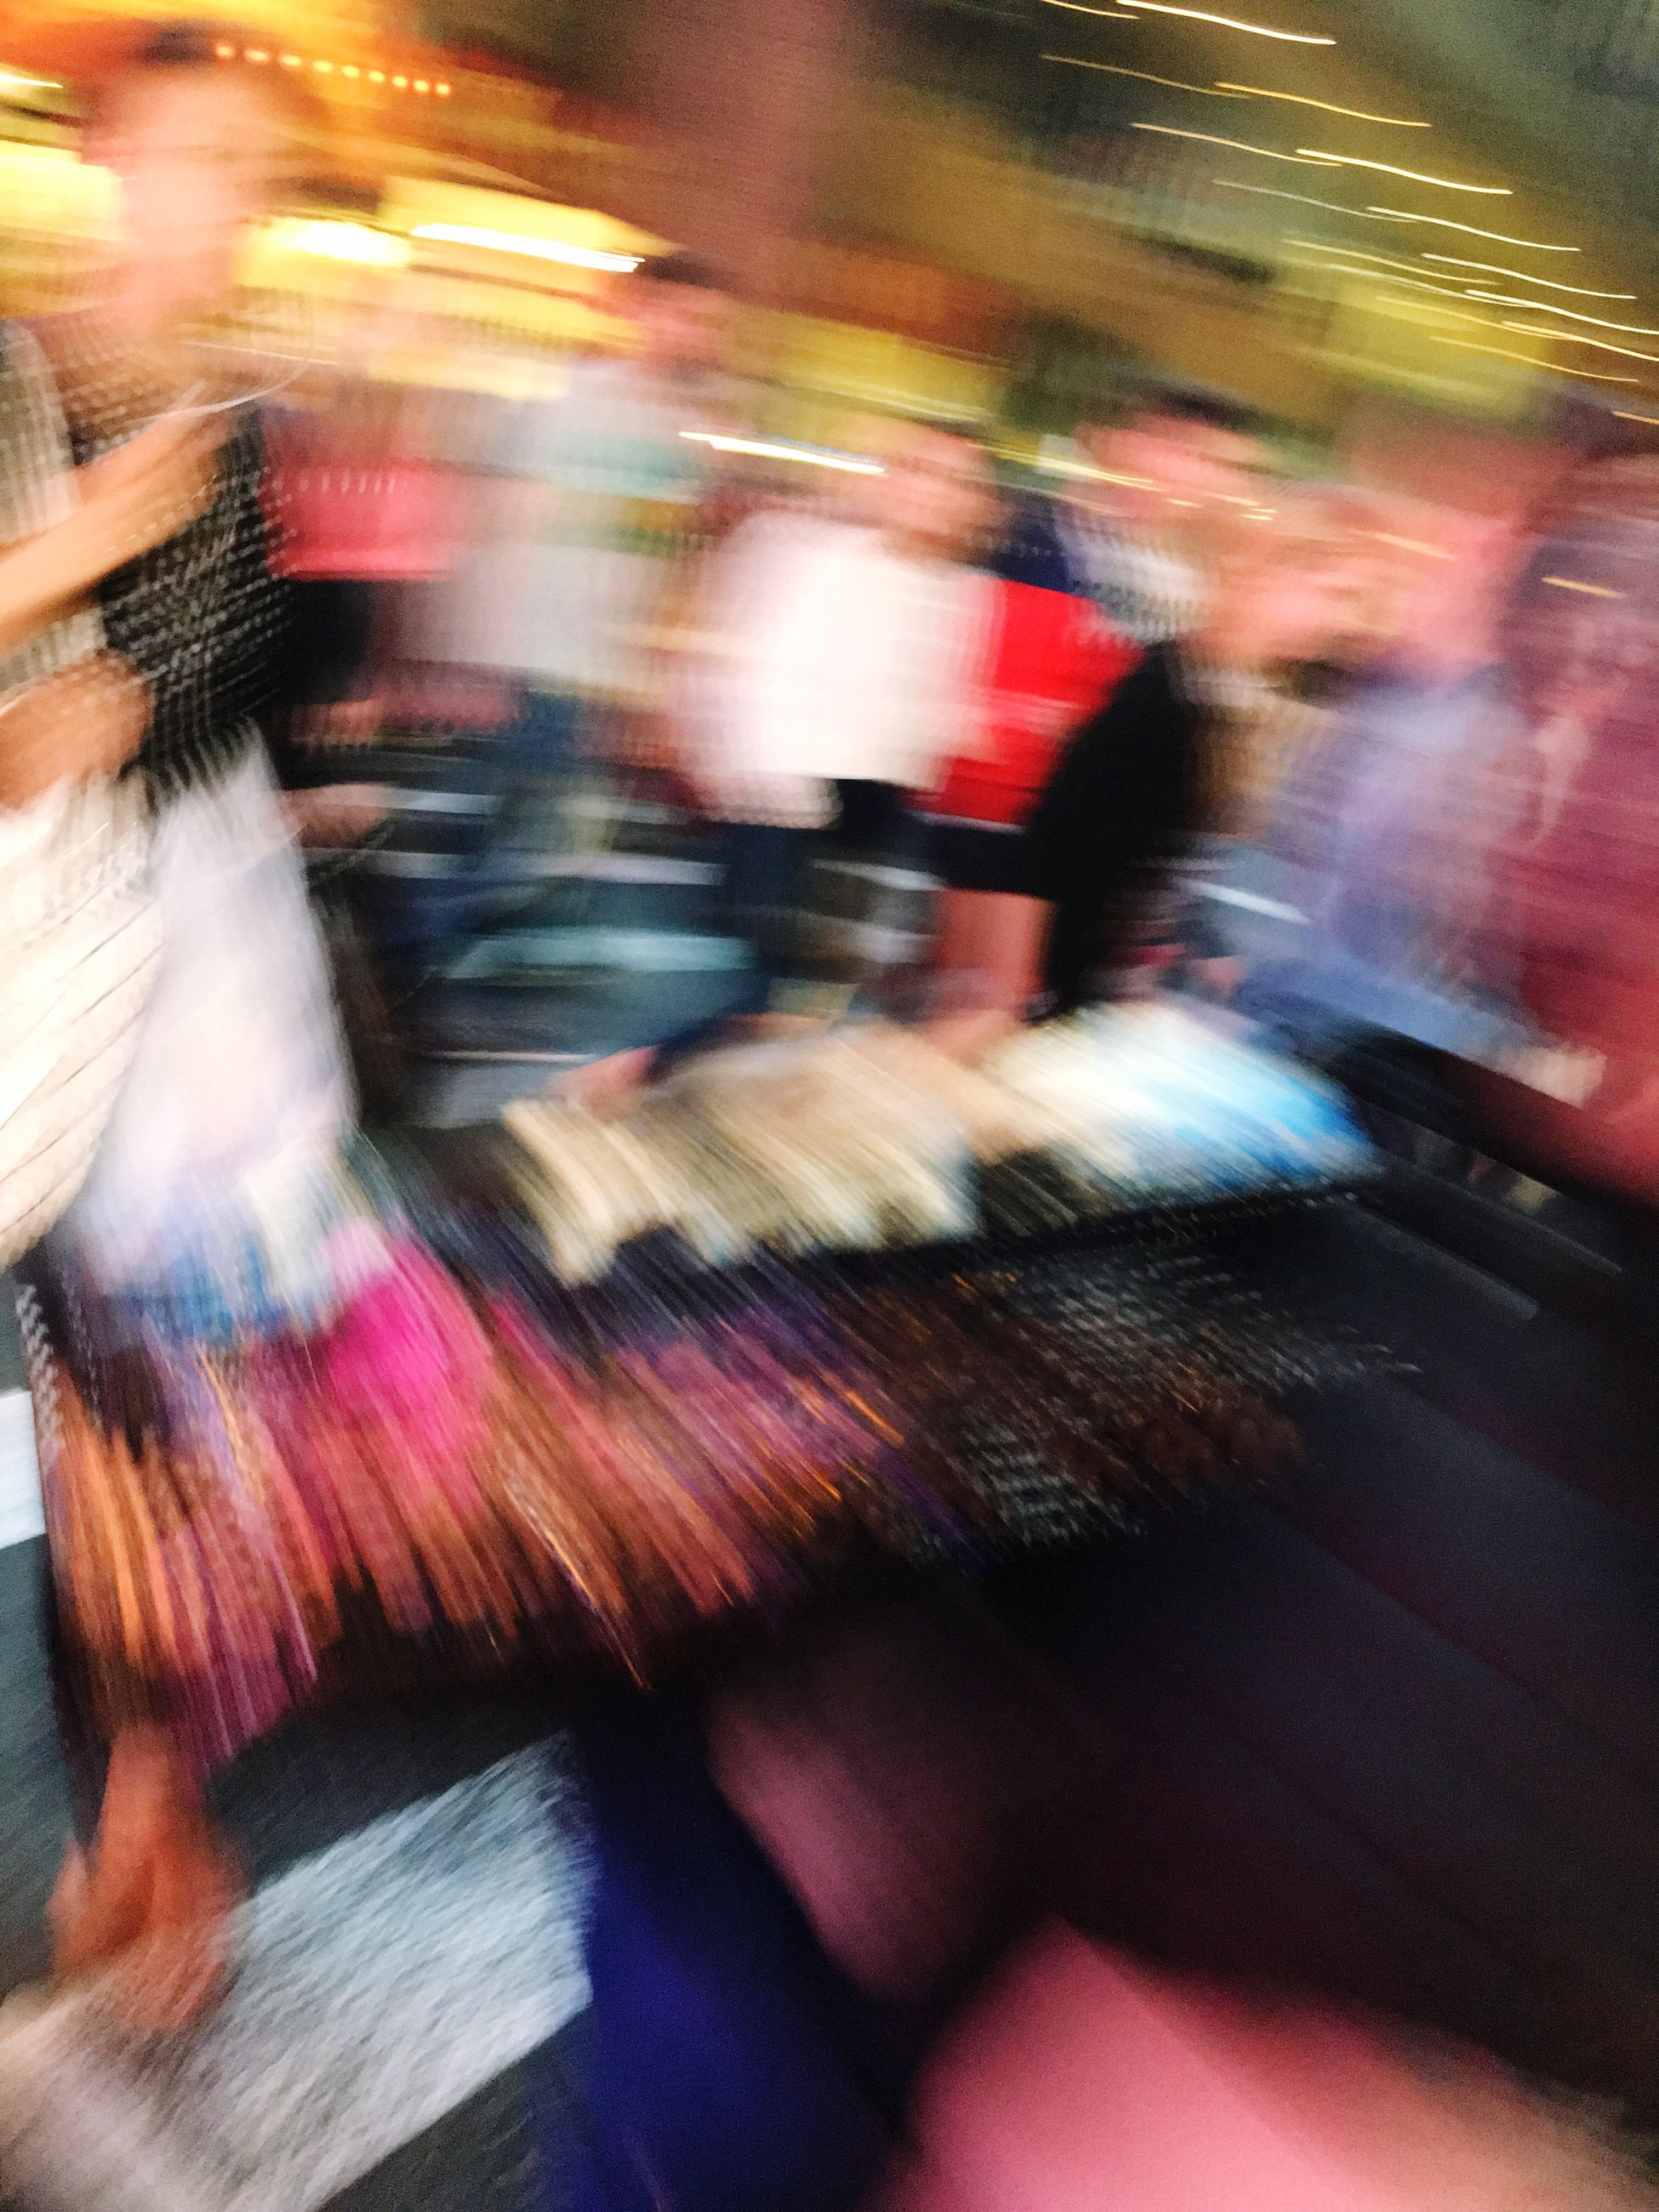 blurred motion, real people, motion, large group of people, retail, women, lifestyles, men, outdoors, day, illuminated, crowd, city, people